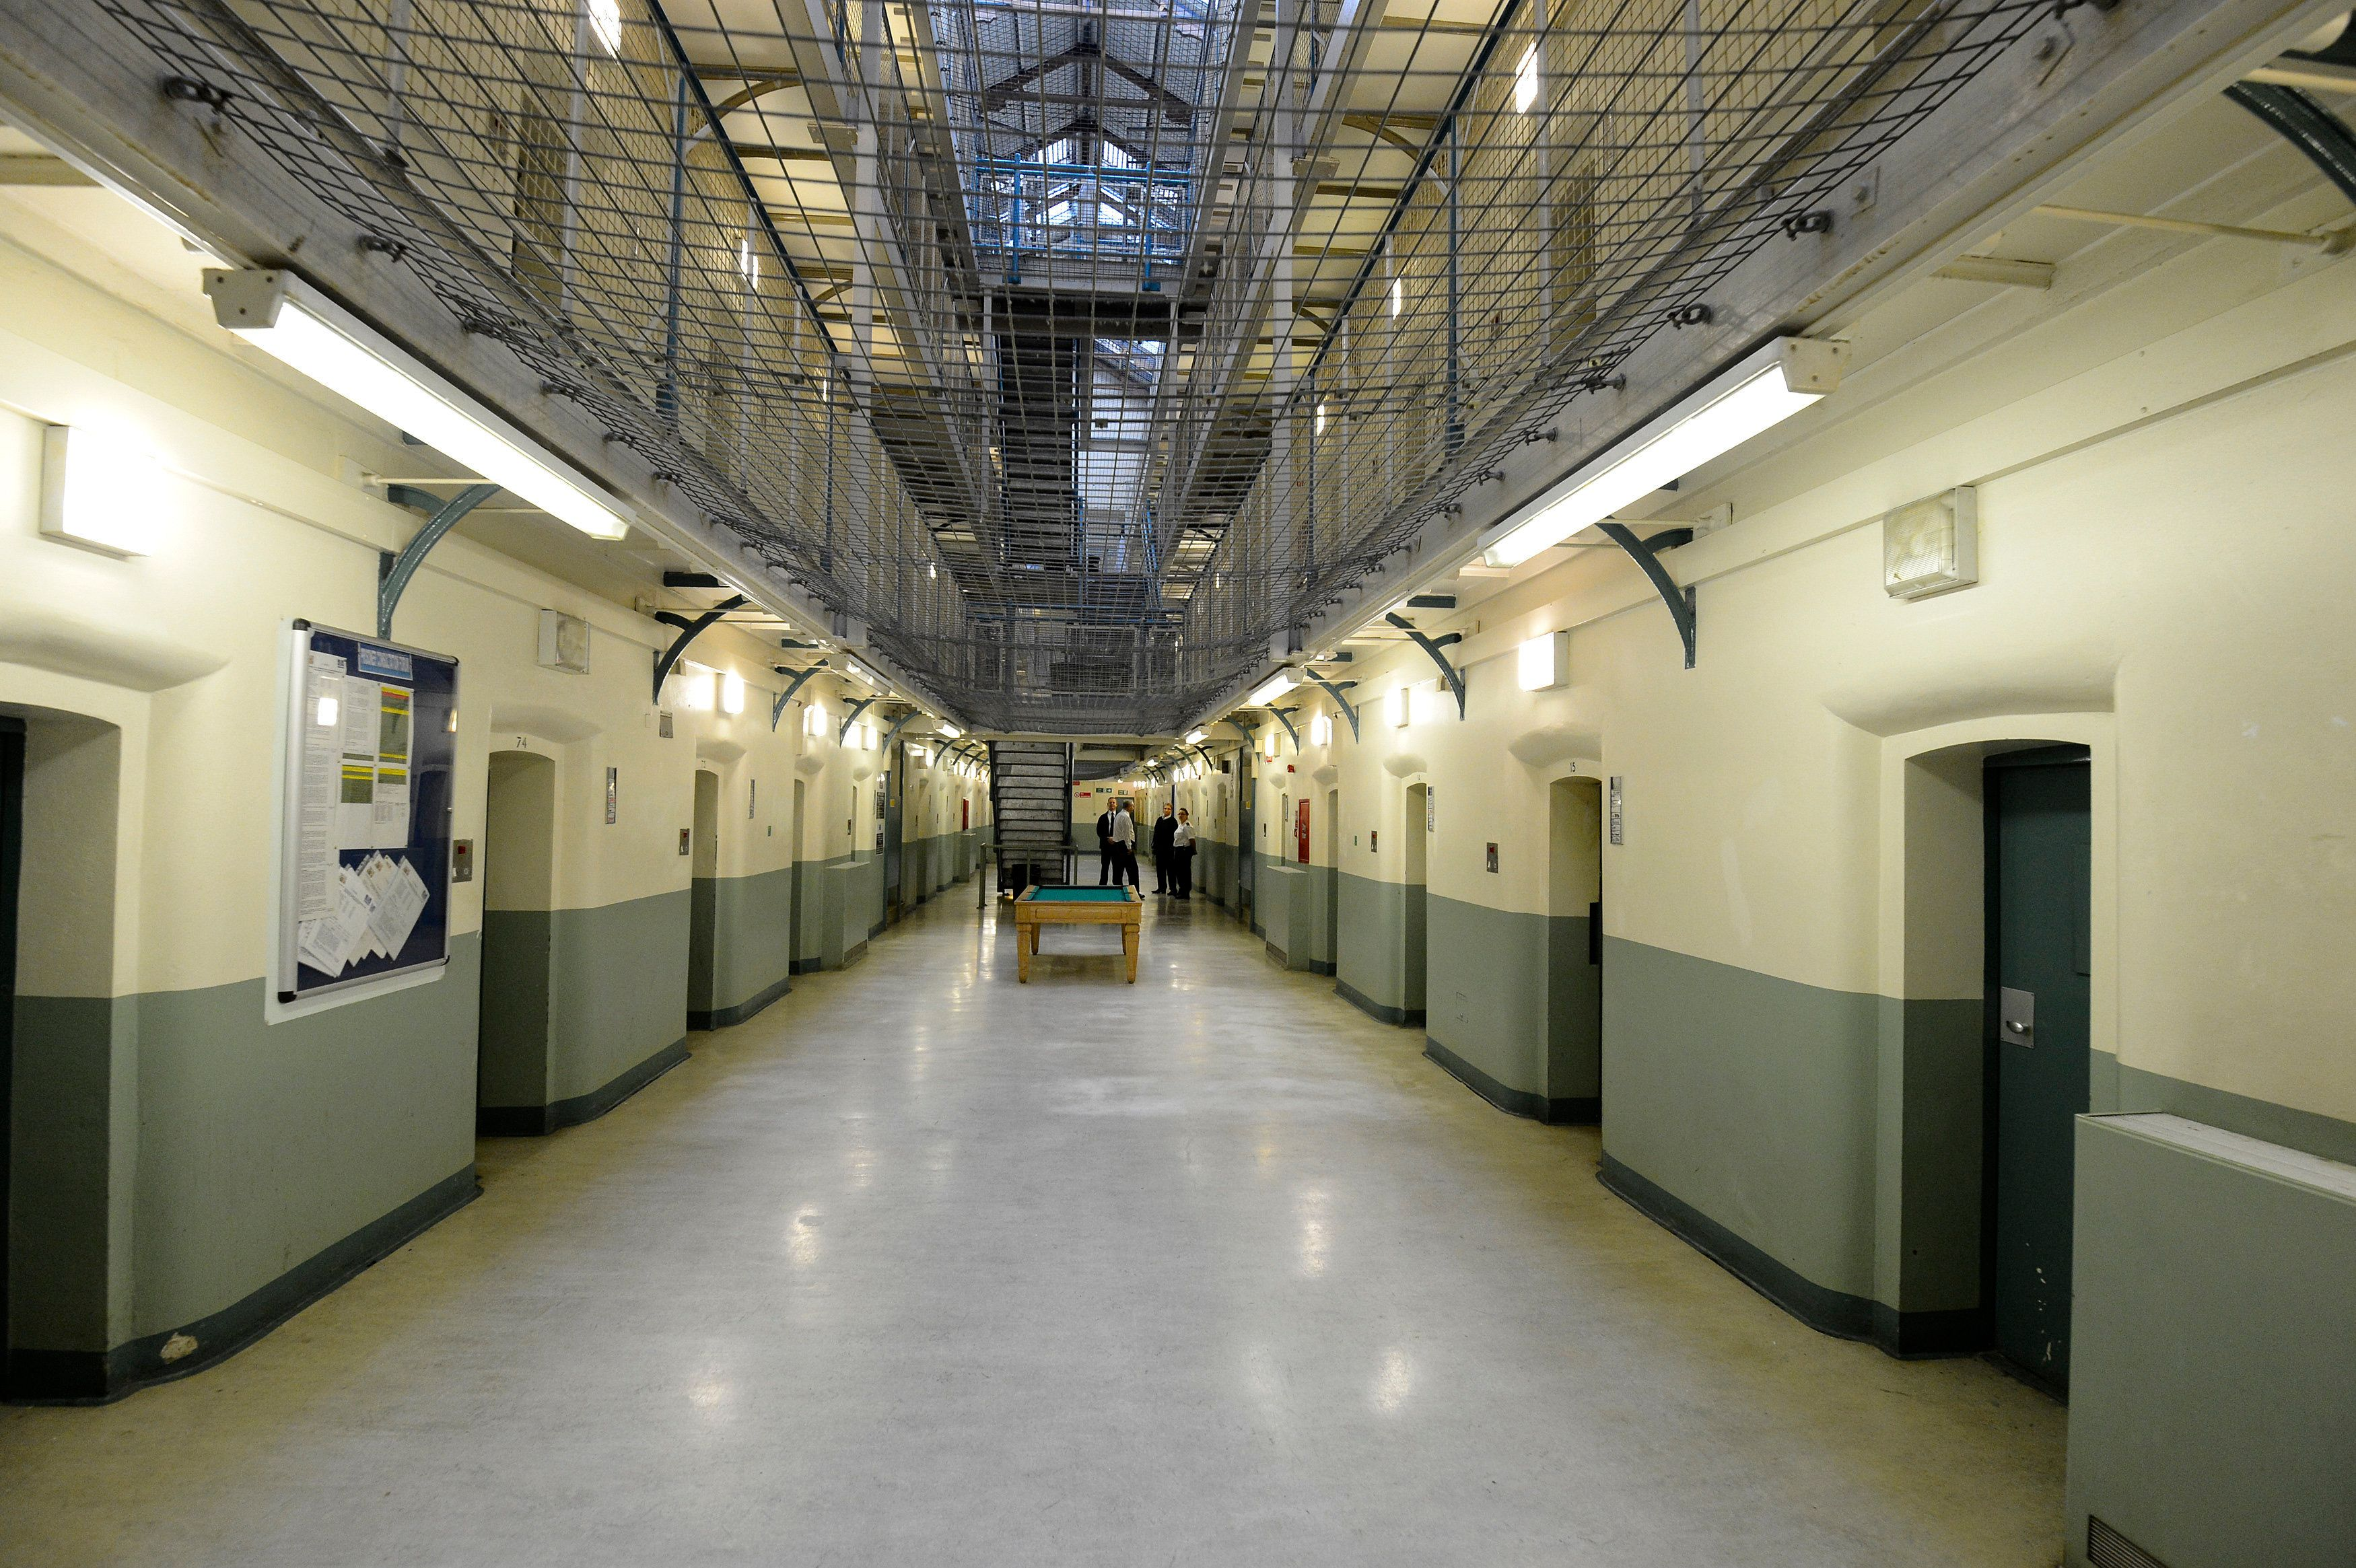 Prison Staff Caught Smuggling Banned Items Soars 58% Since 2012, Report